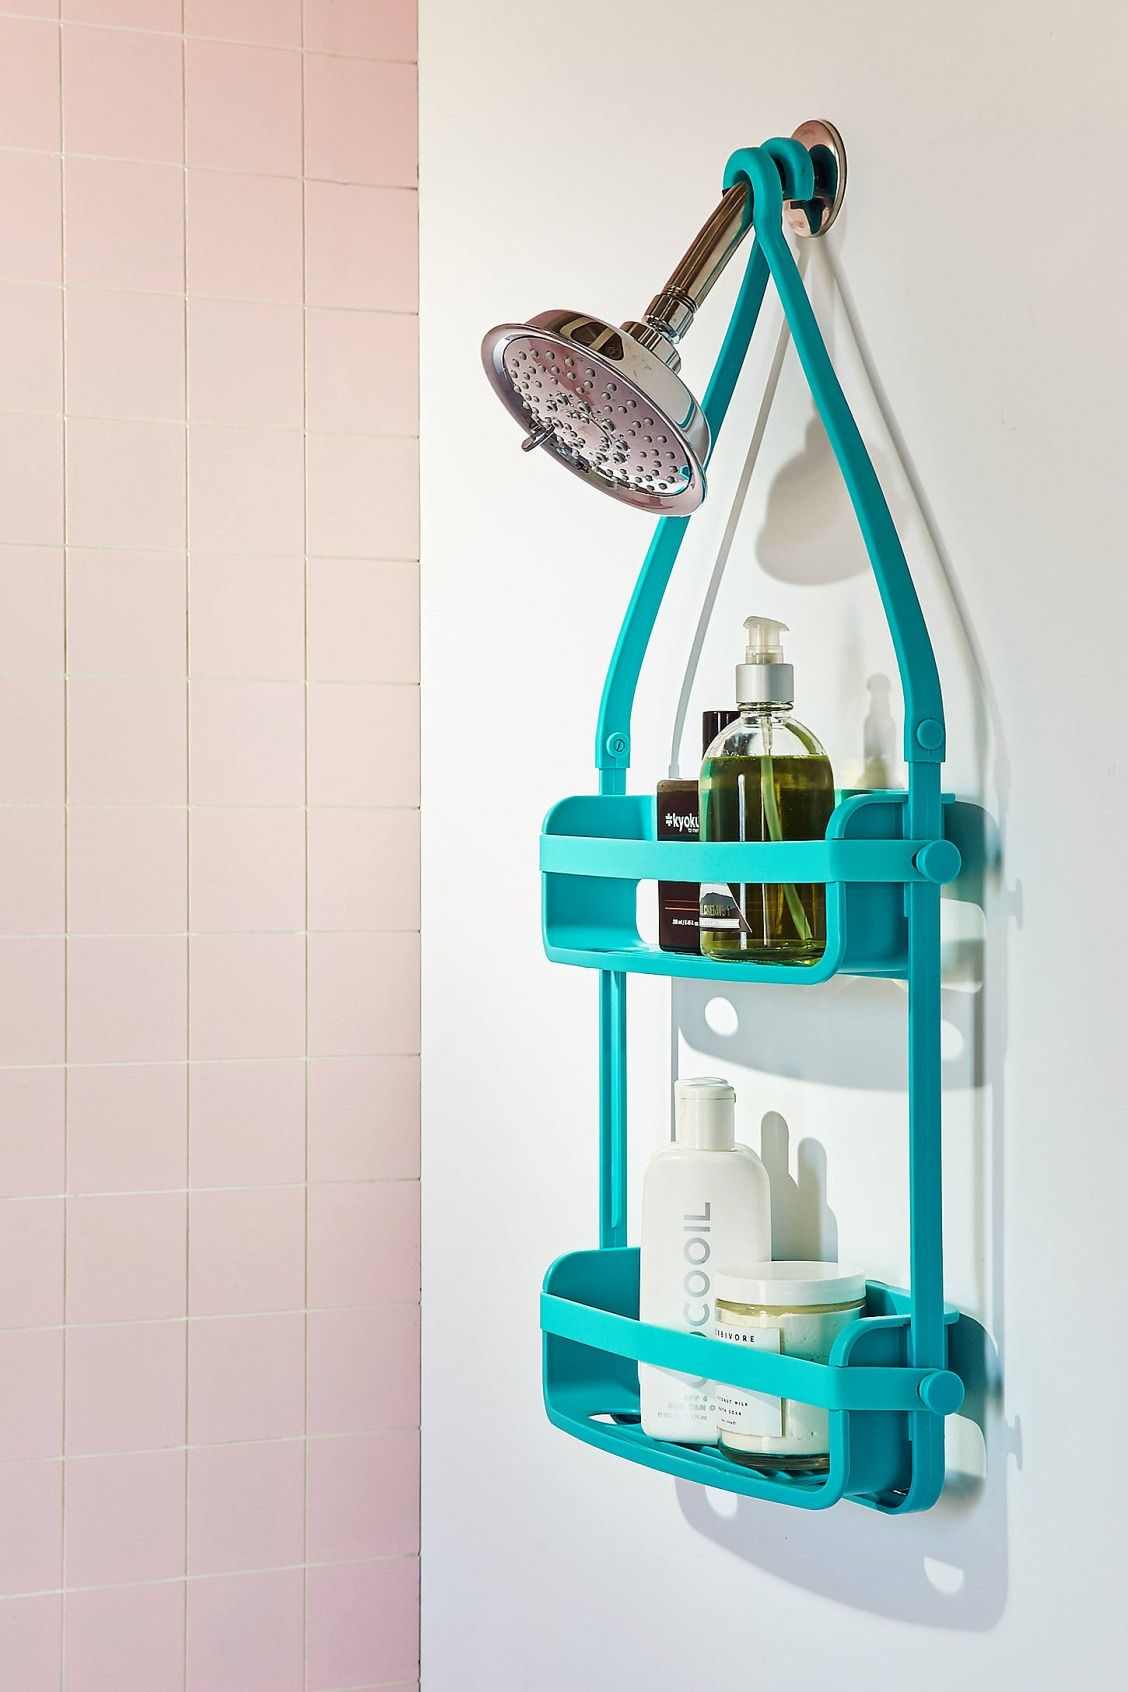 Preston Flex Shower Caddy | Bath | Pinterest | Preston, Urban ...